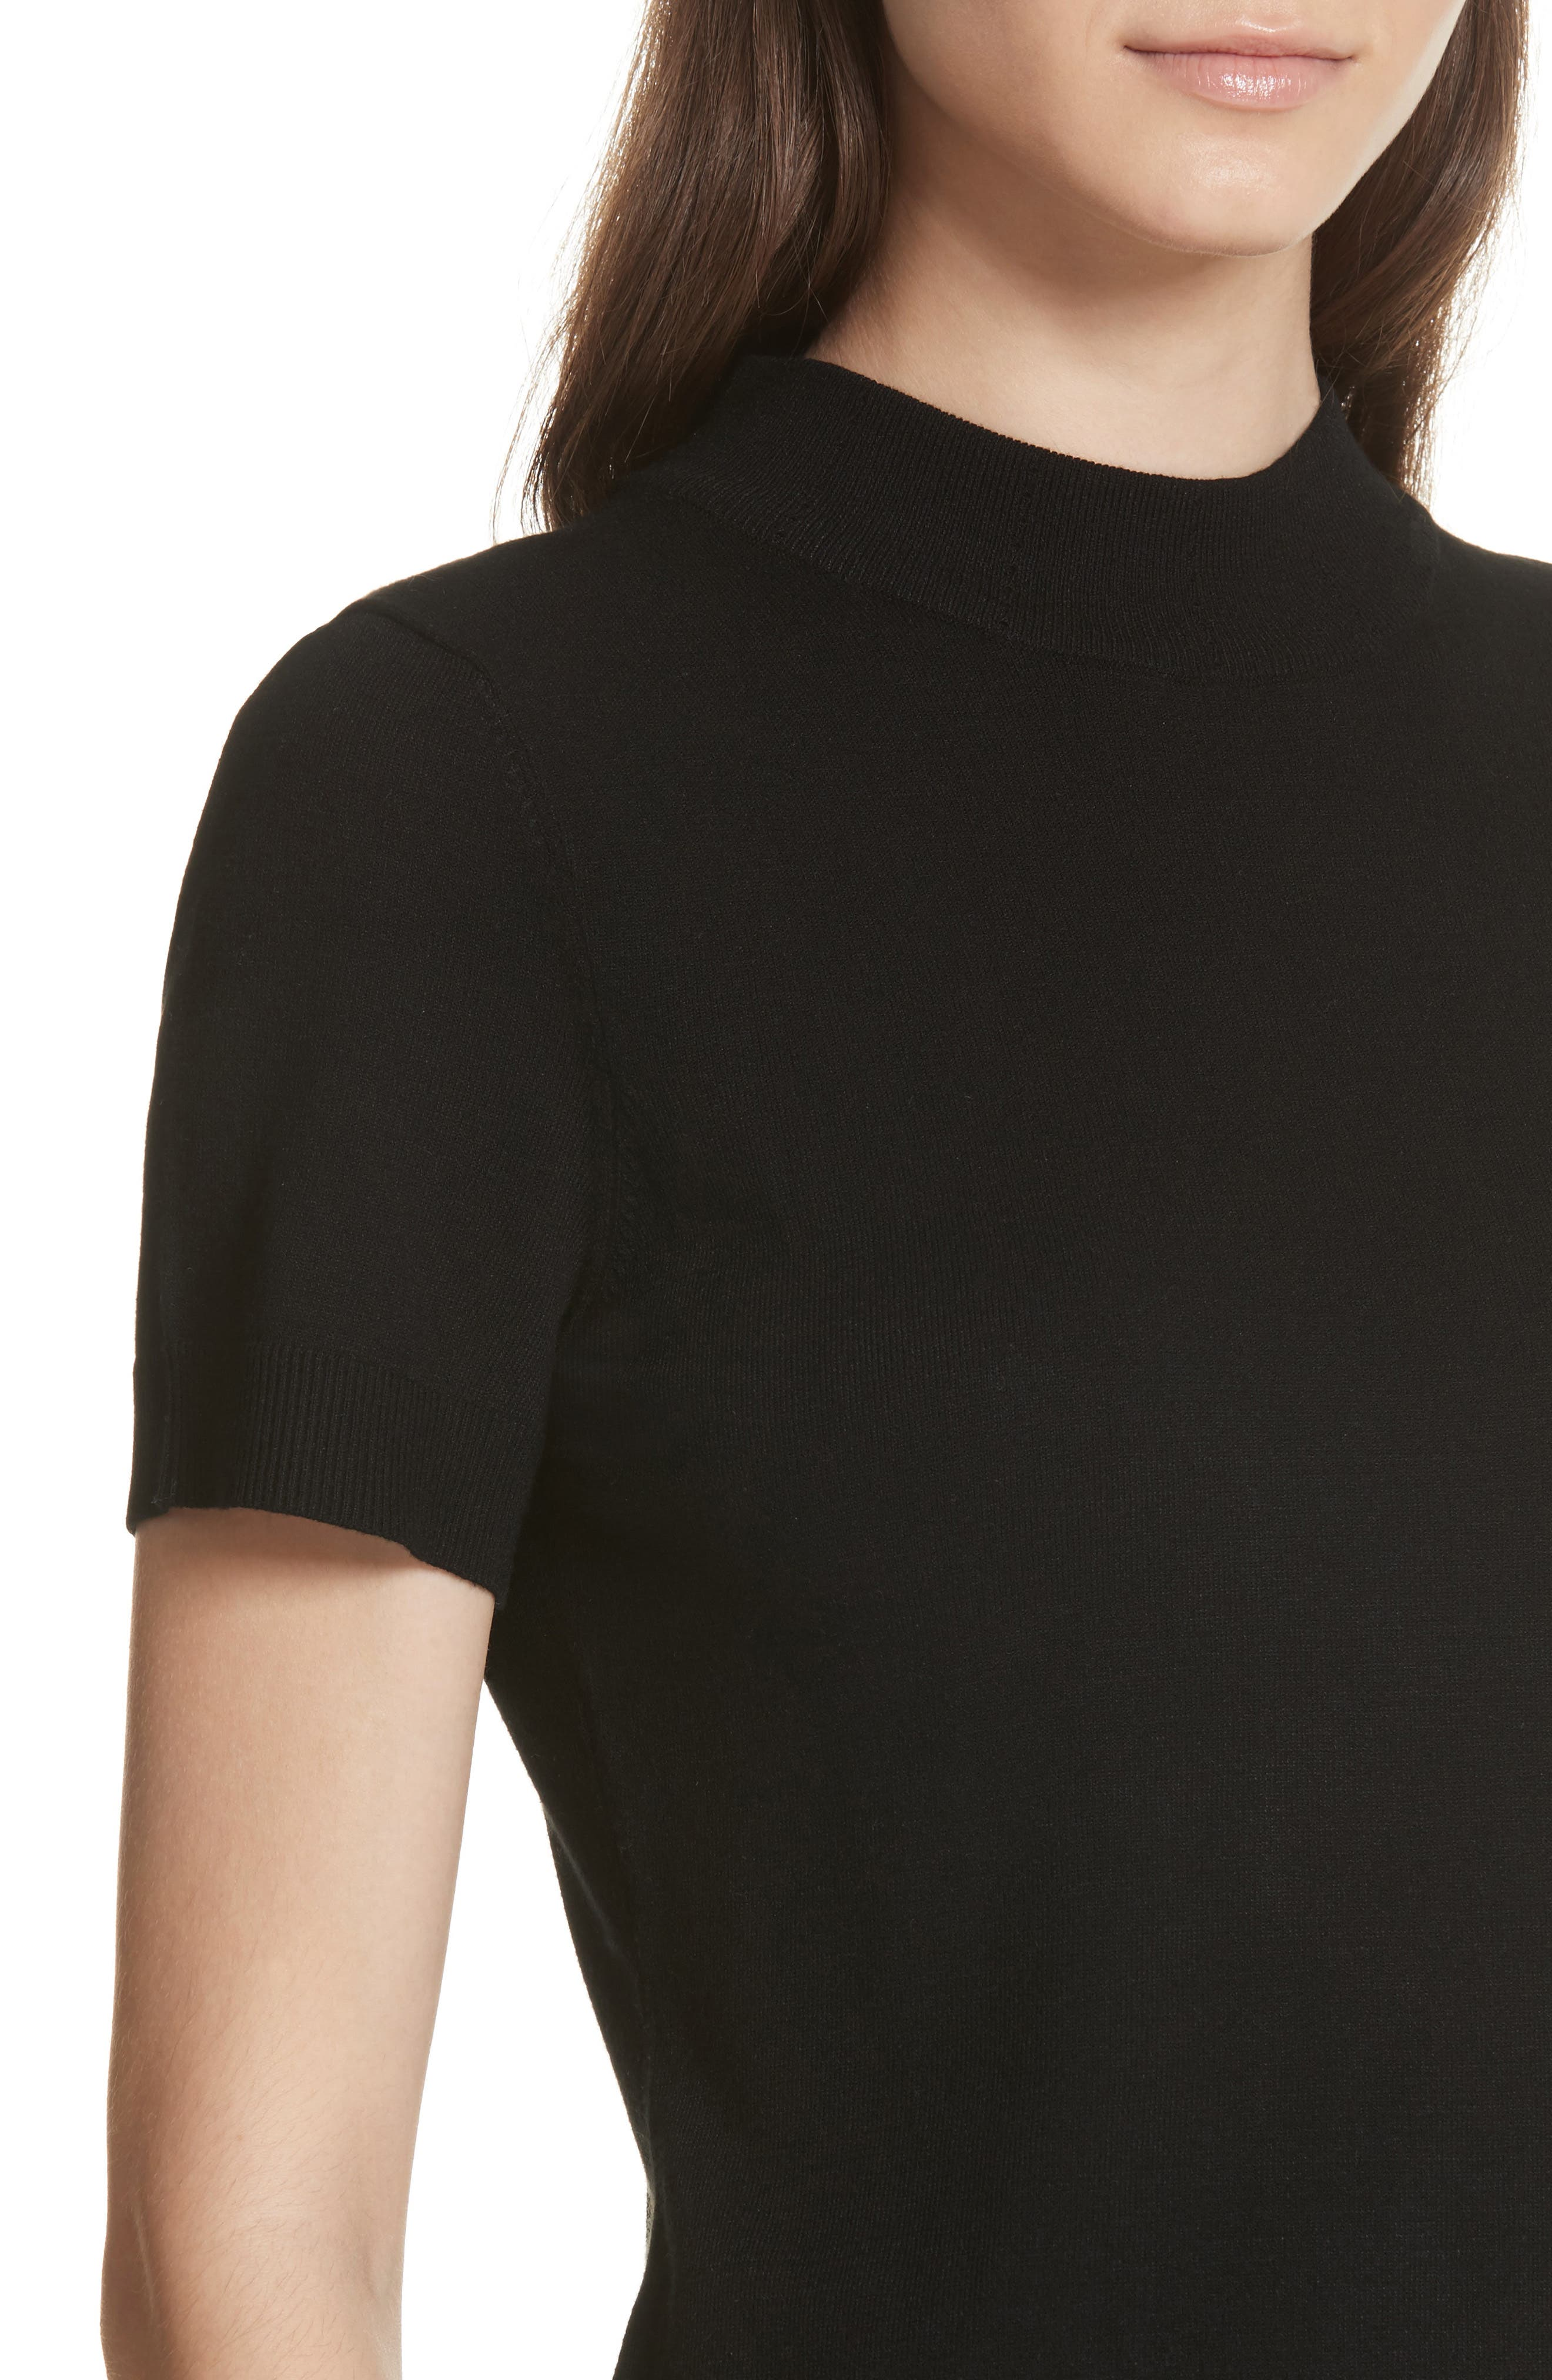 MILLY,                             Mock Neck Tee,                             Alternate thumbnail 4, color,                             001